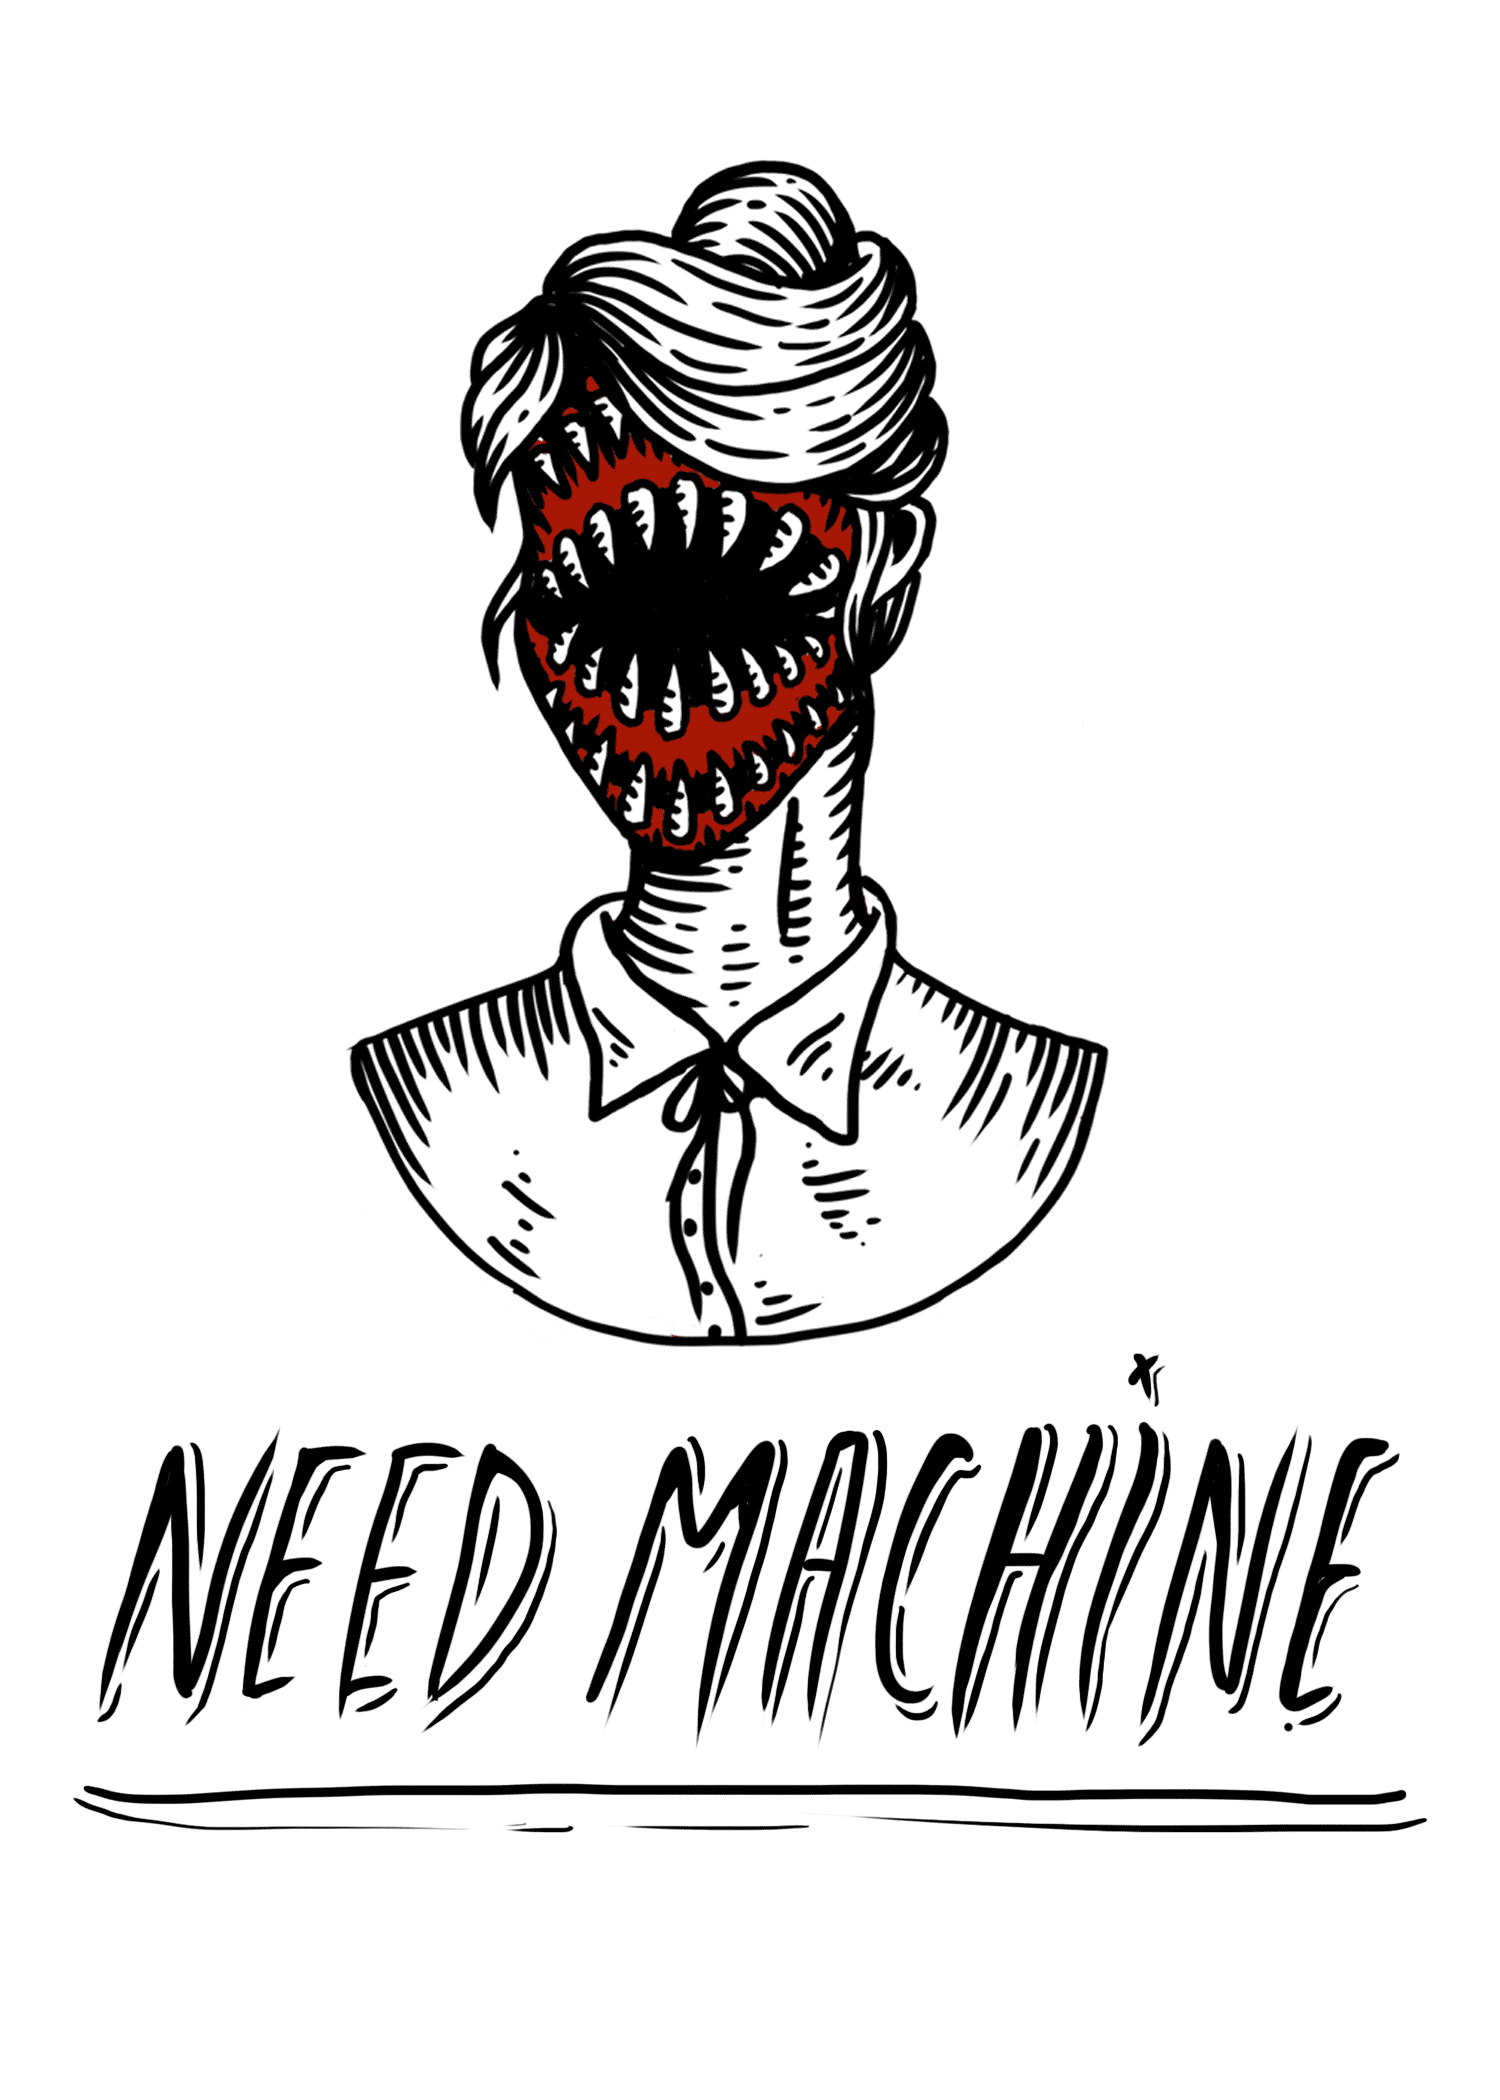 Need Machine